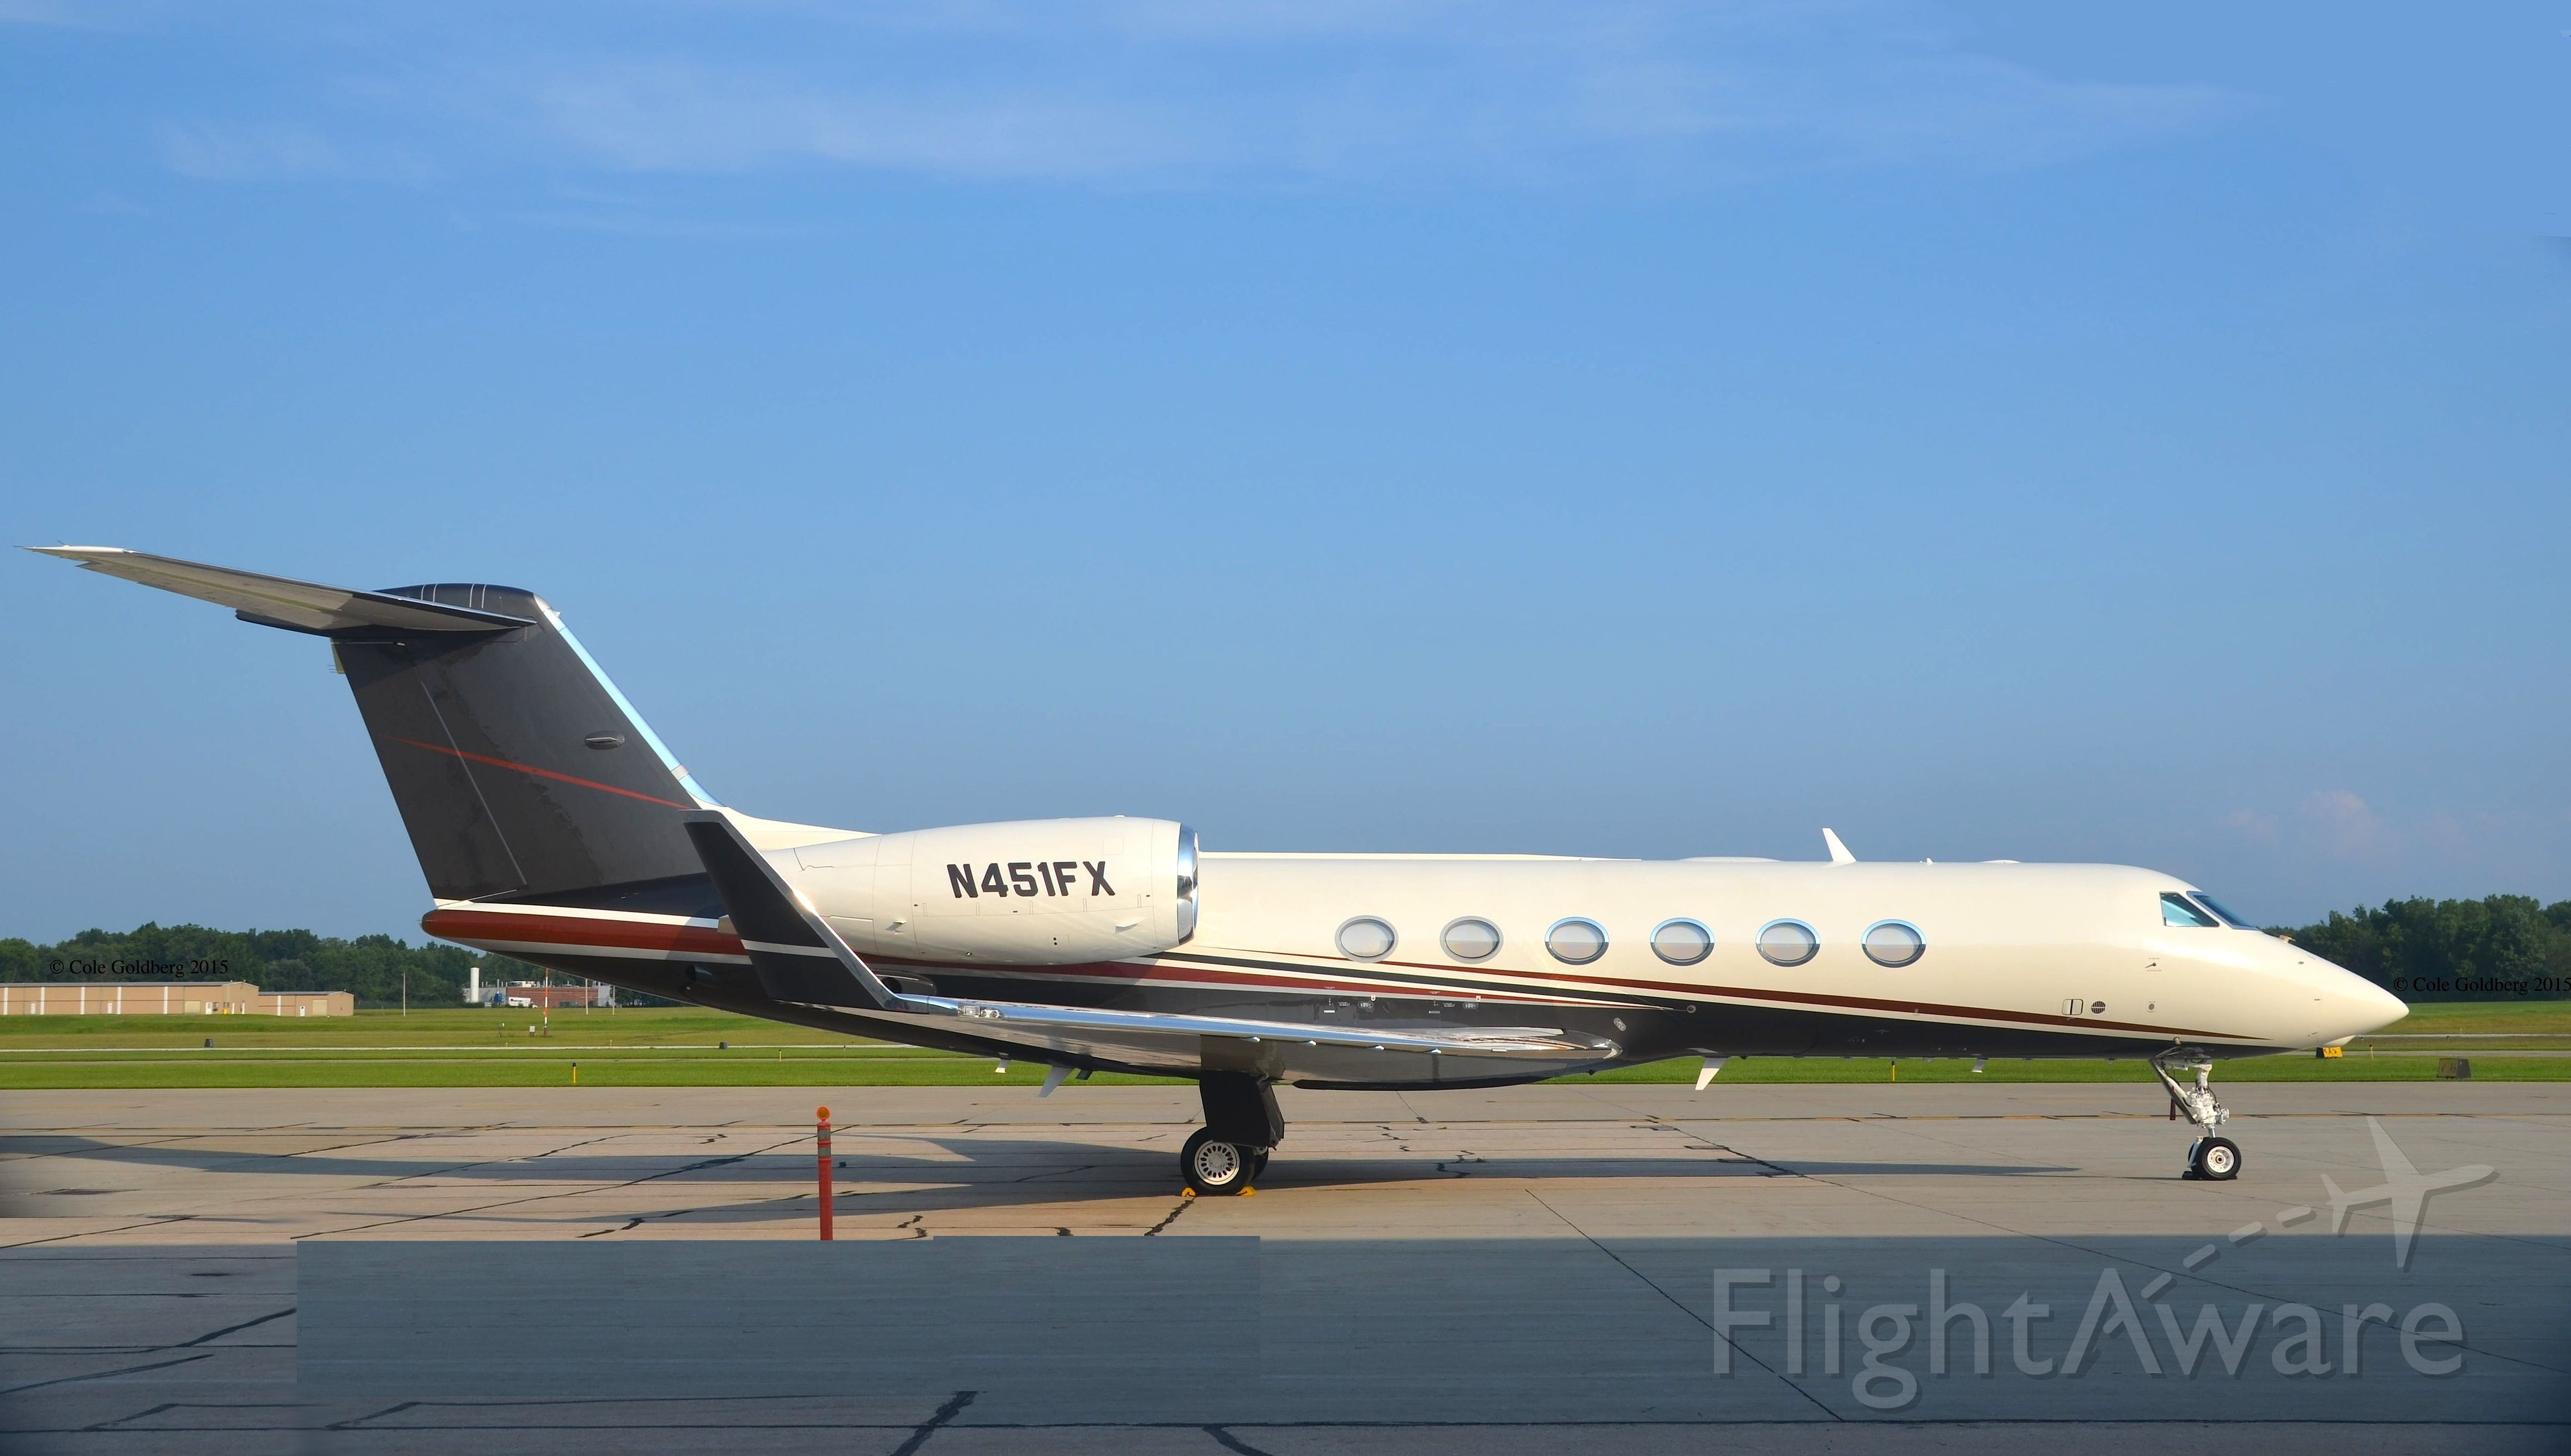 Gulfstream Aerospace Gulfstream IV (LXJ451) - N451FX/LXJ451 seen at Cuyahoga County Airport. Delivery date 6/23/15. Please look for more photos on OPShots.net